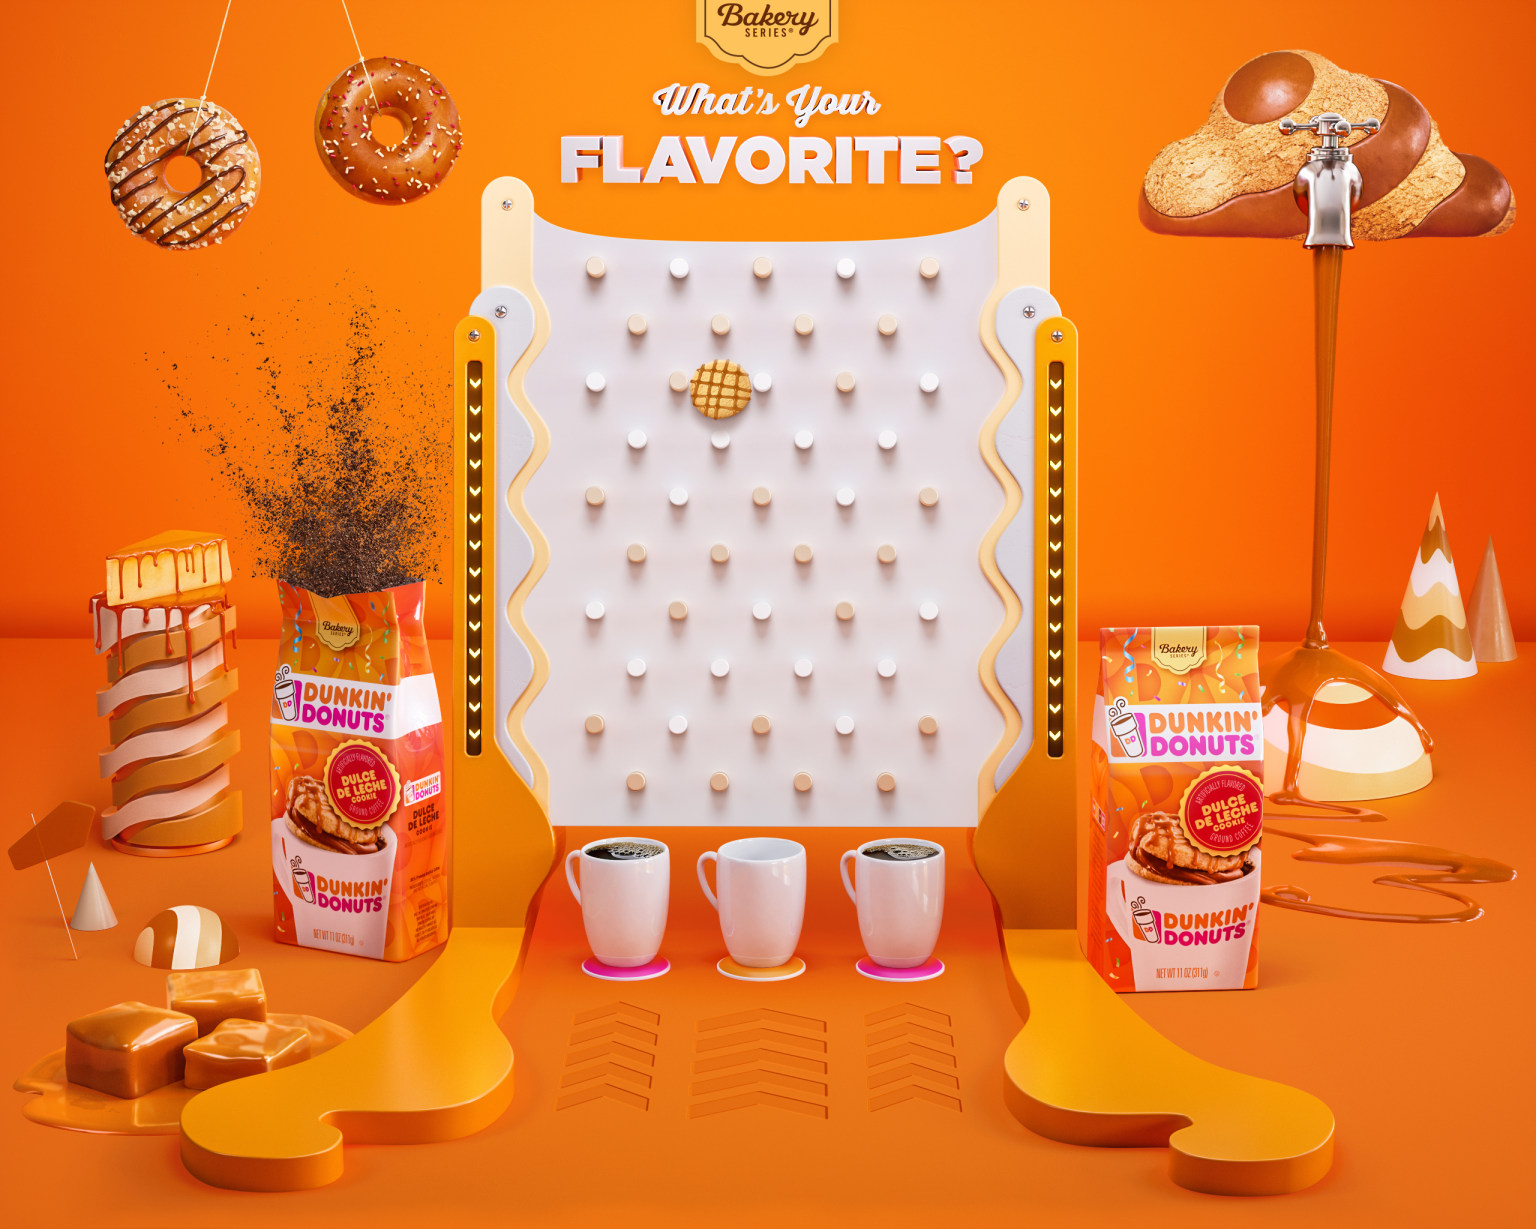 Dunkin Donuts Flavorites Competition